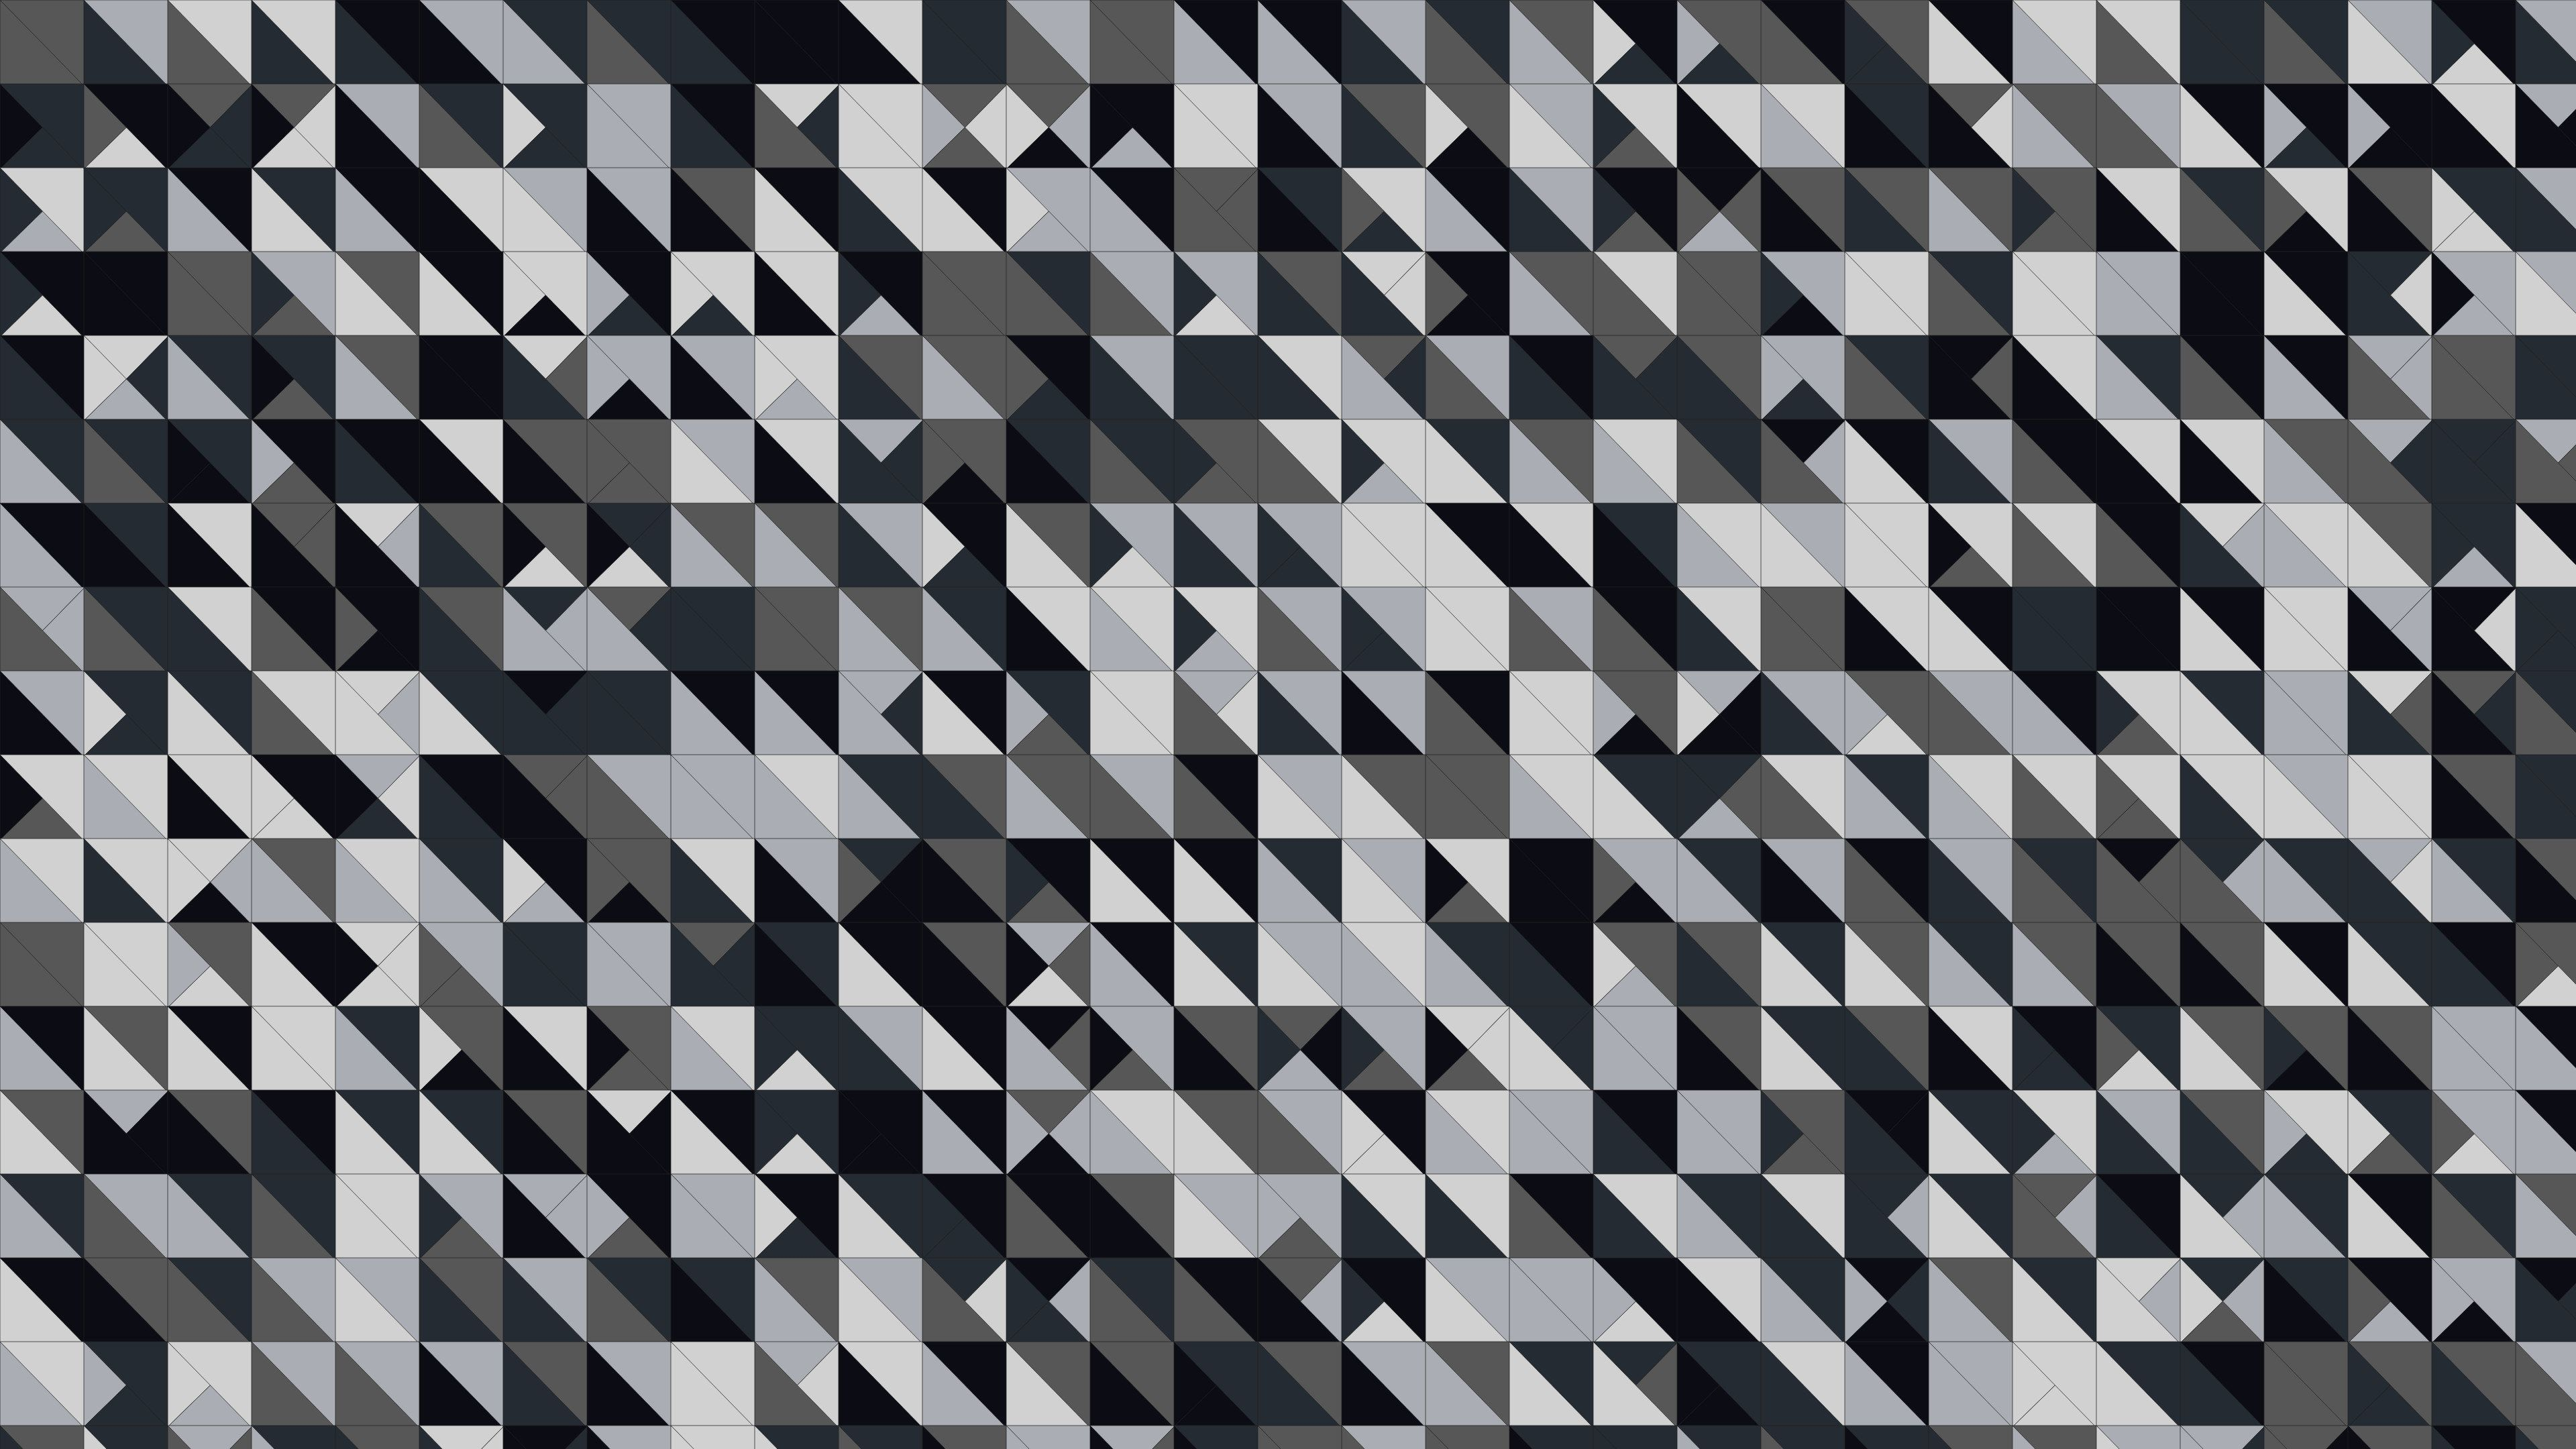 Black And White Abstract 4k More At Https Docfest Org Black And White Abstrac Black And White Abstract Black Background Wallpaper Black Background Design